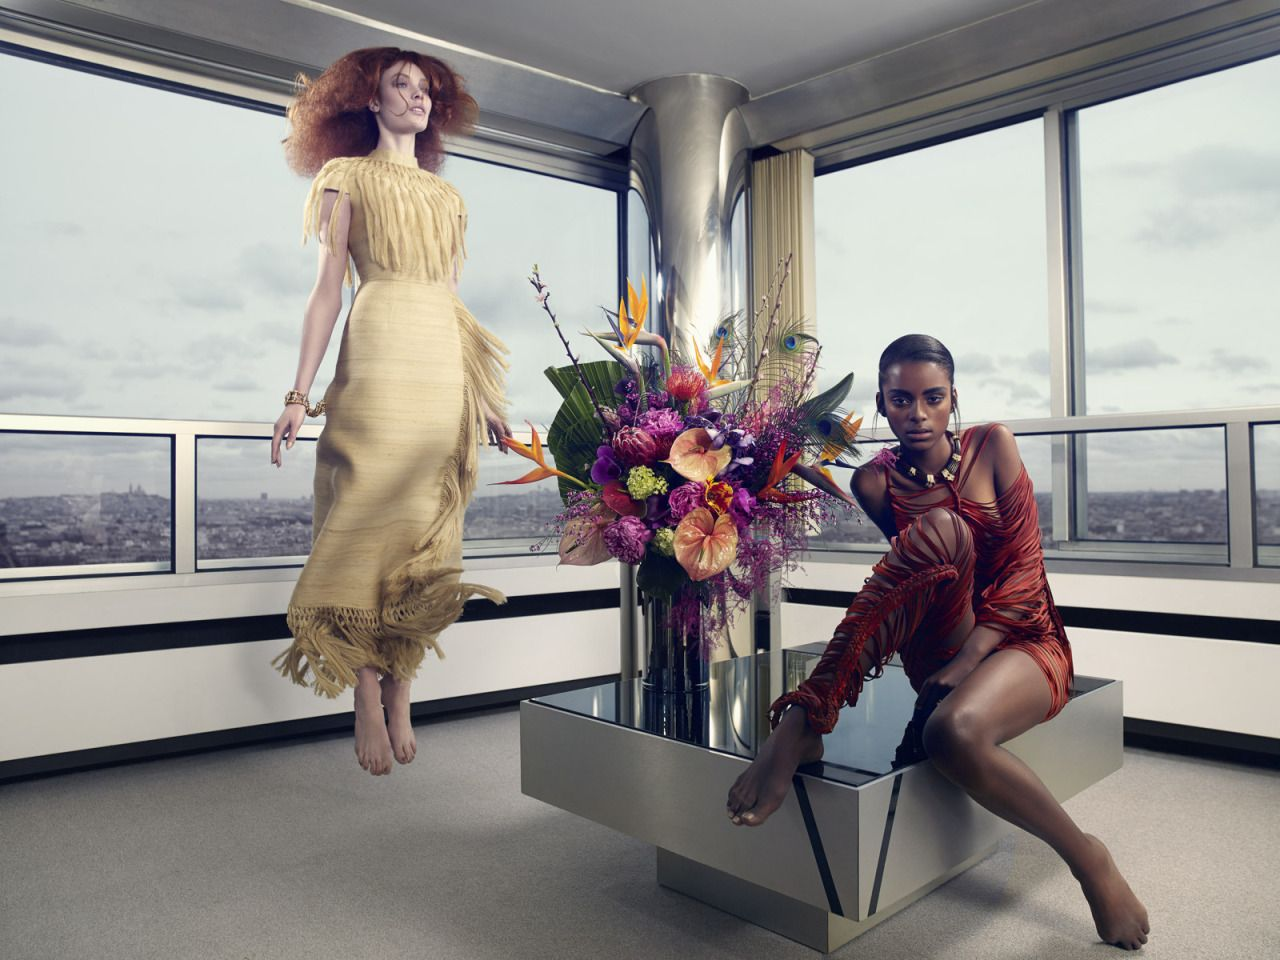 3e56cdb84a2 Alexandra Martynova and Alécia Morais by John-Paul Pietrus for SCMP Style  June 2014.  fashion  photography